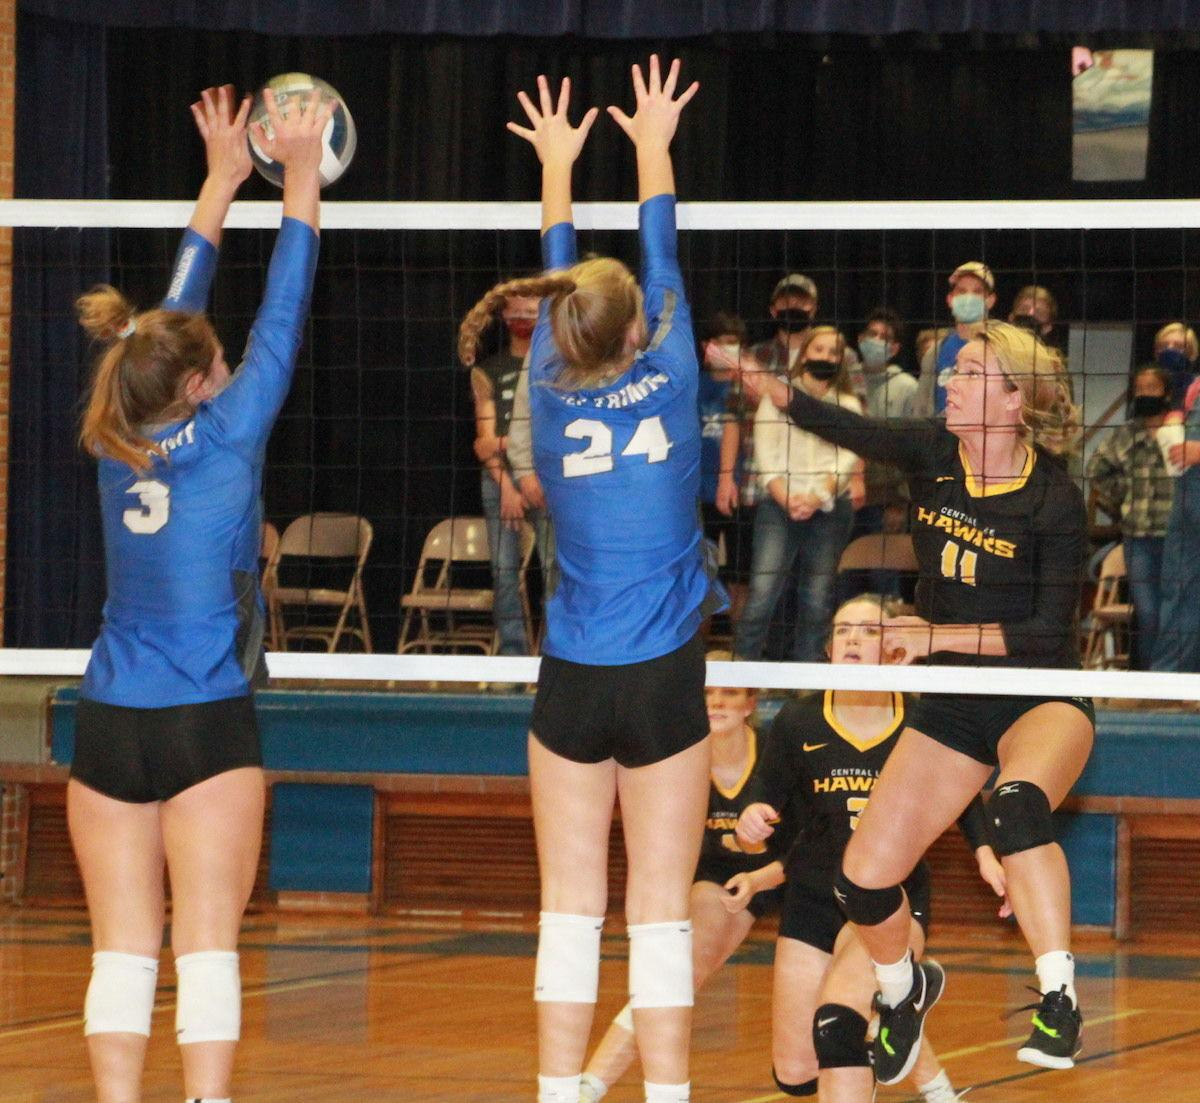 Wellman gets past a pair of blockers